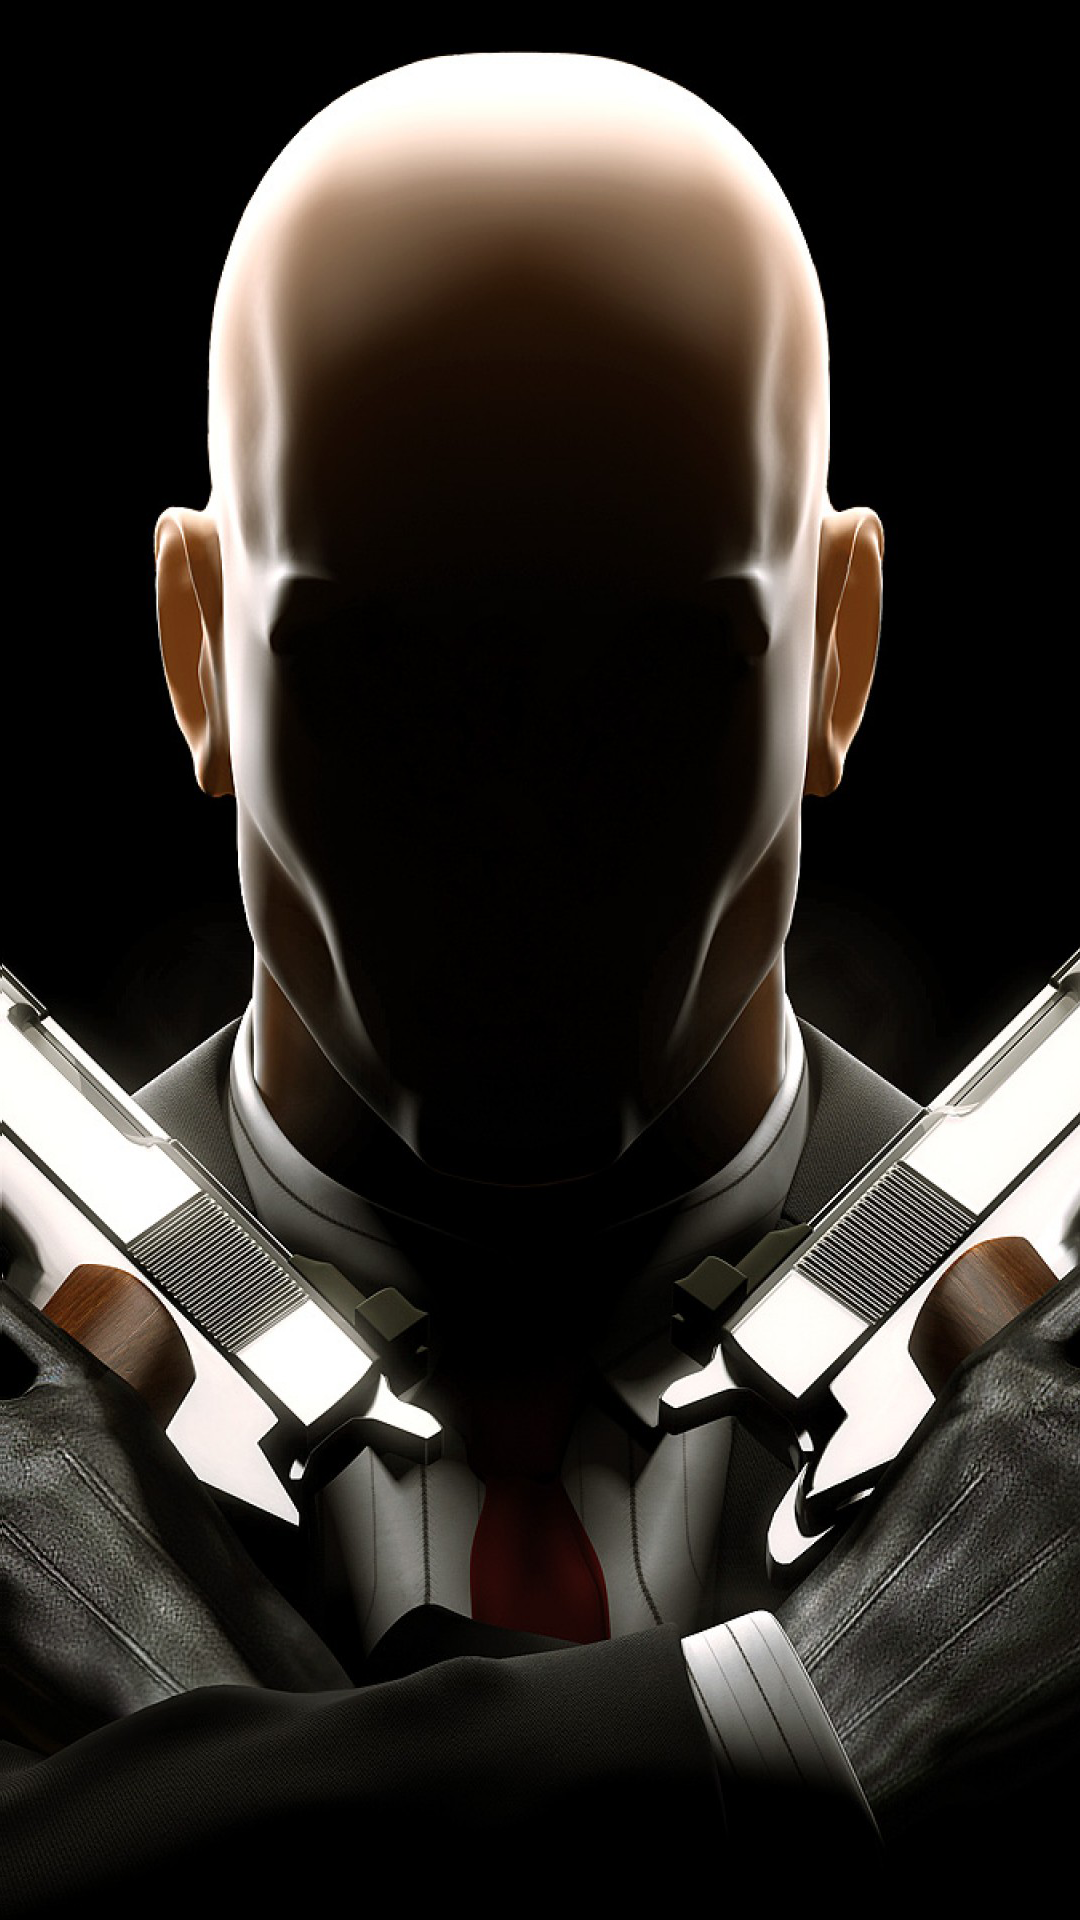 Download our hd hitman 47 wallpaper for android phones 0137 - Hitman 47 wallpaper ...